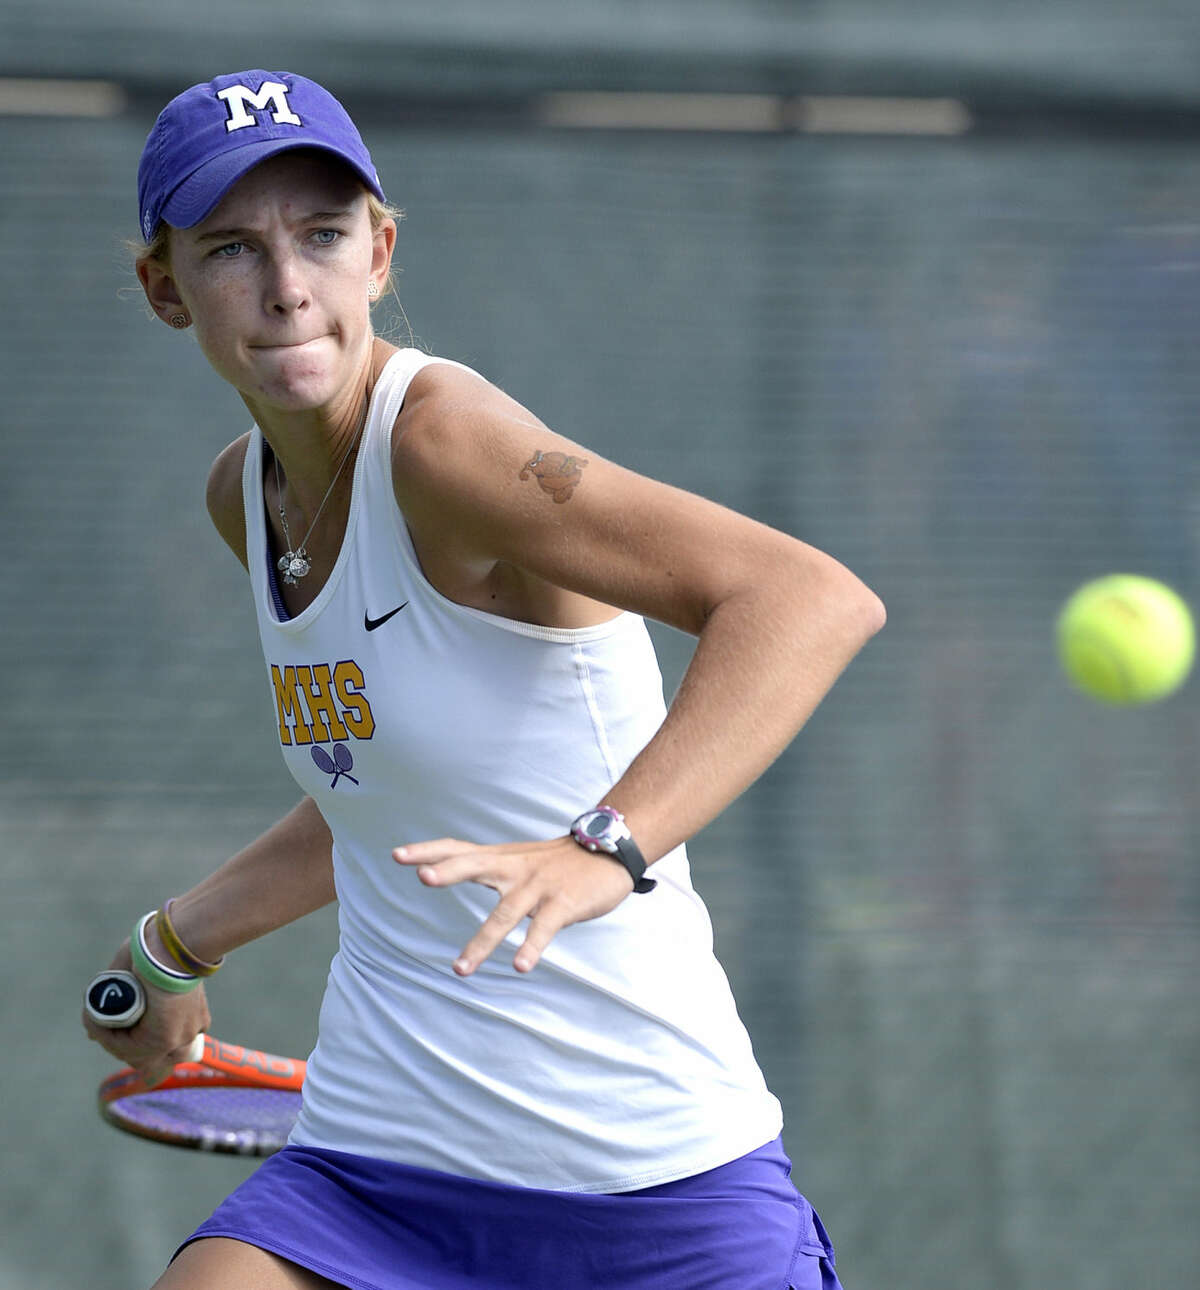 Midland High's Kate Daugherty competes in the District 3-6A tennis match against Abilene High on Saturday, Sept. 12, 2015 at the Midland High Tennis Center. James Durbin/Reporter-Telegram